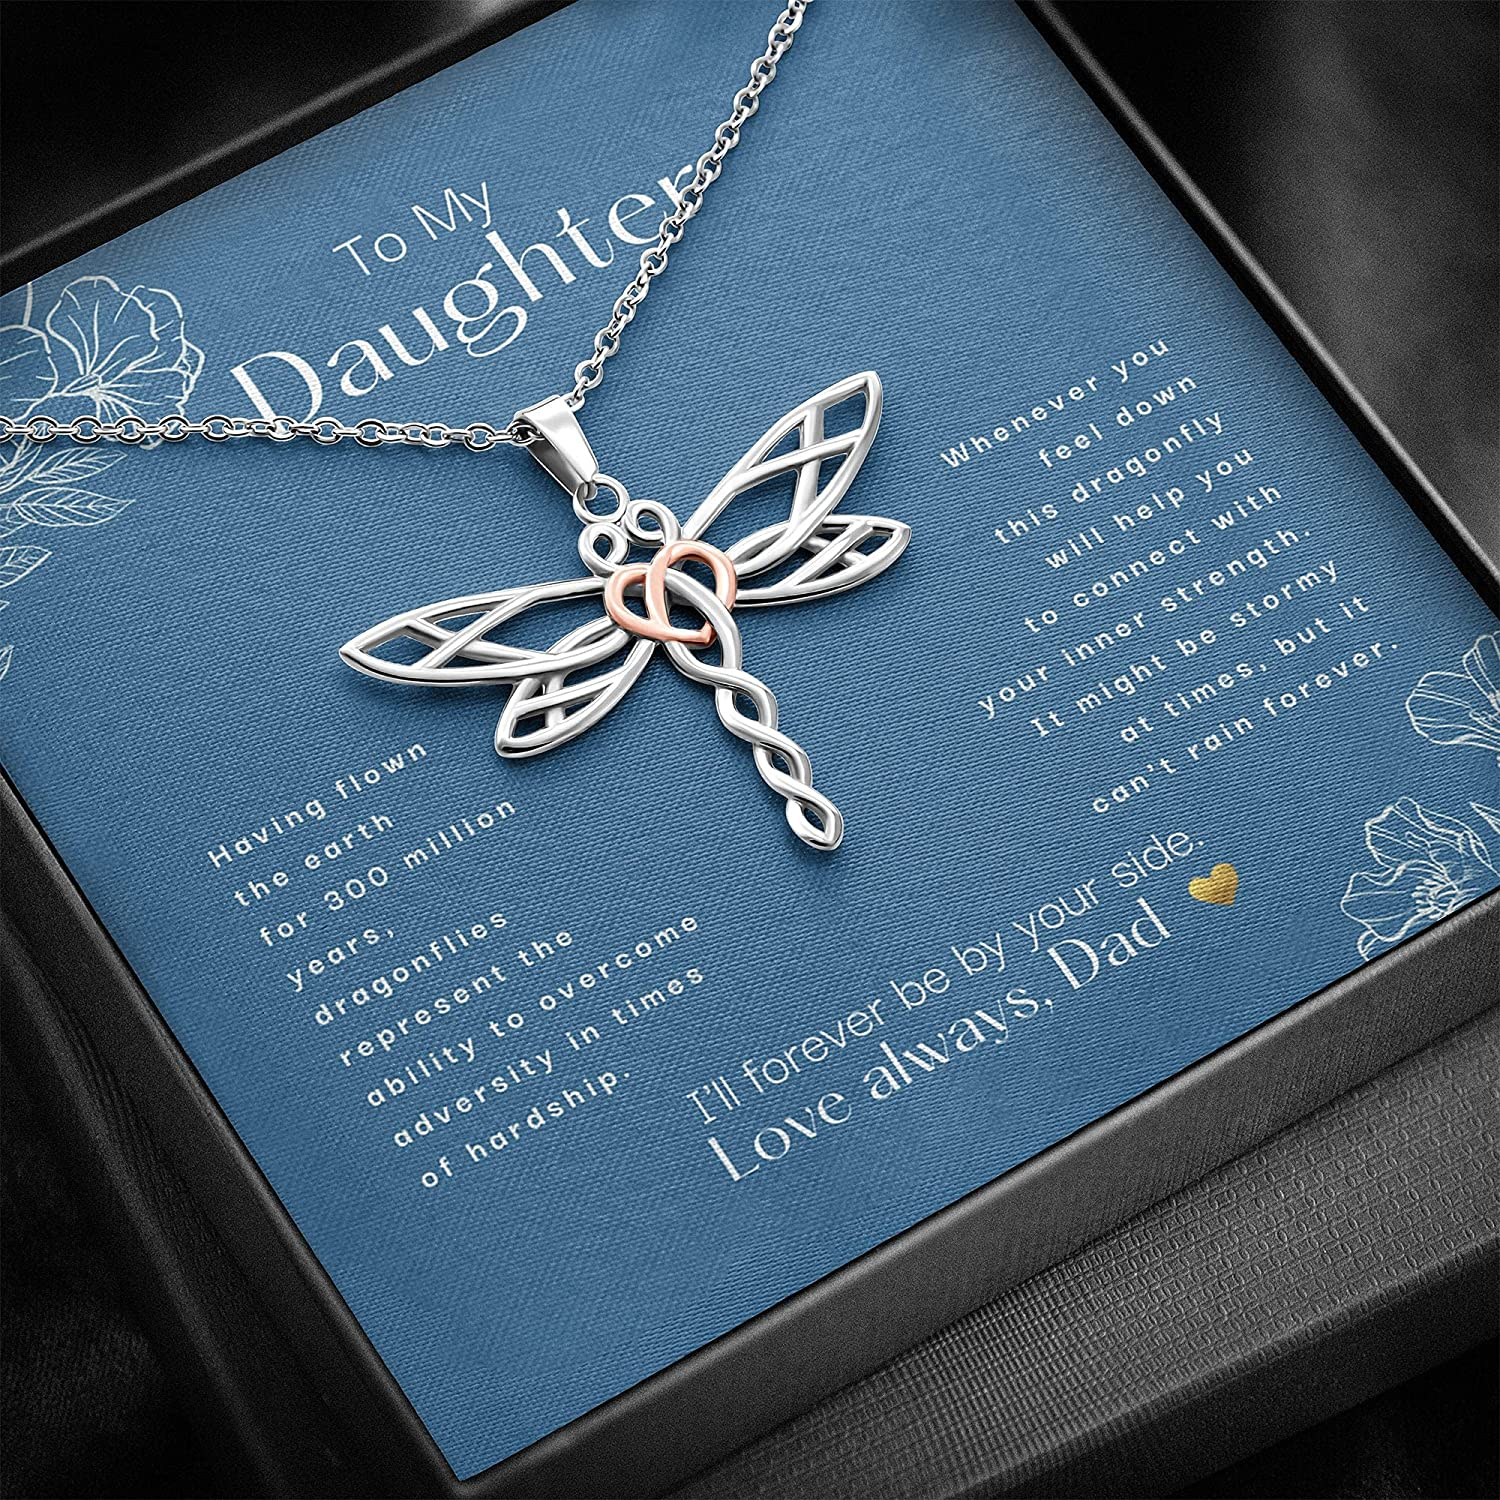 To My Daughter I'll Forever Be Max 40% OFF Your By Dragonfly 70% OFF Outlet Necklace Side